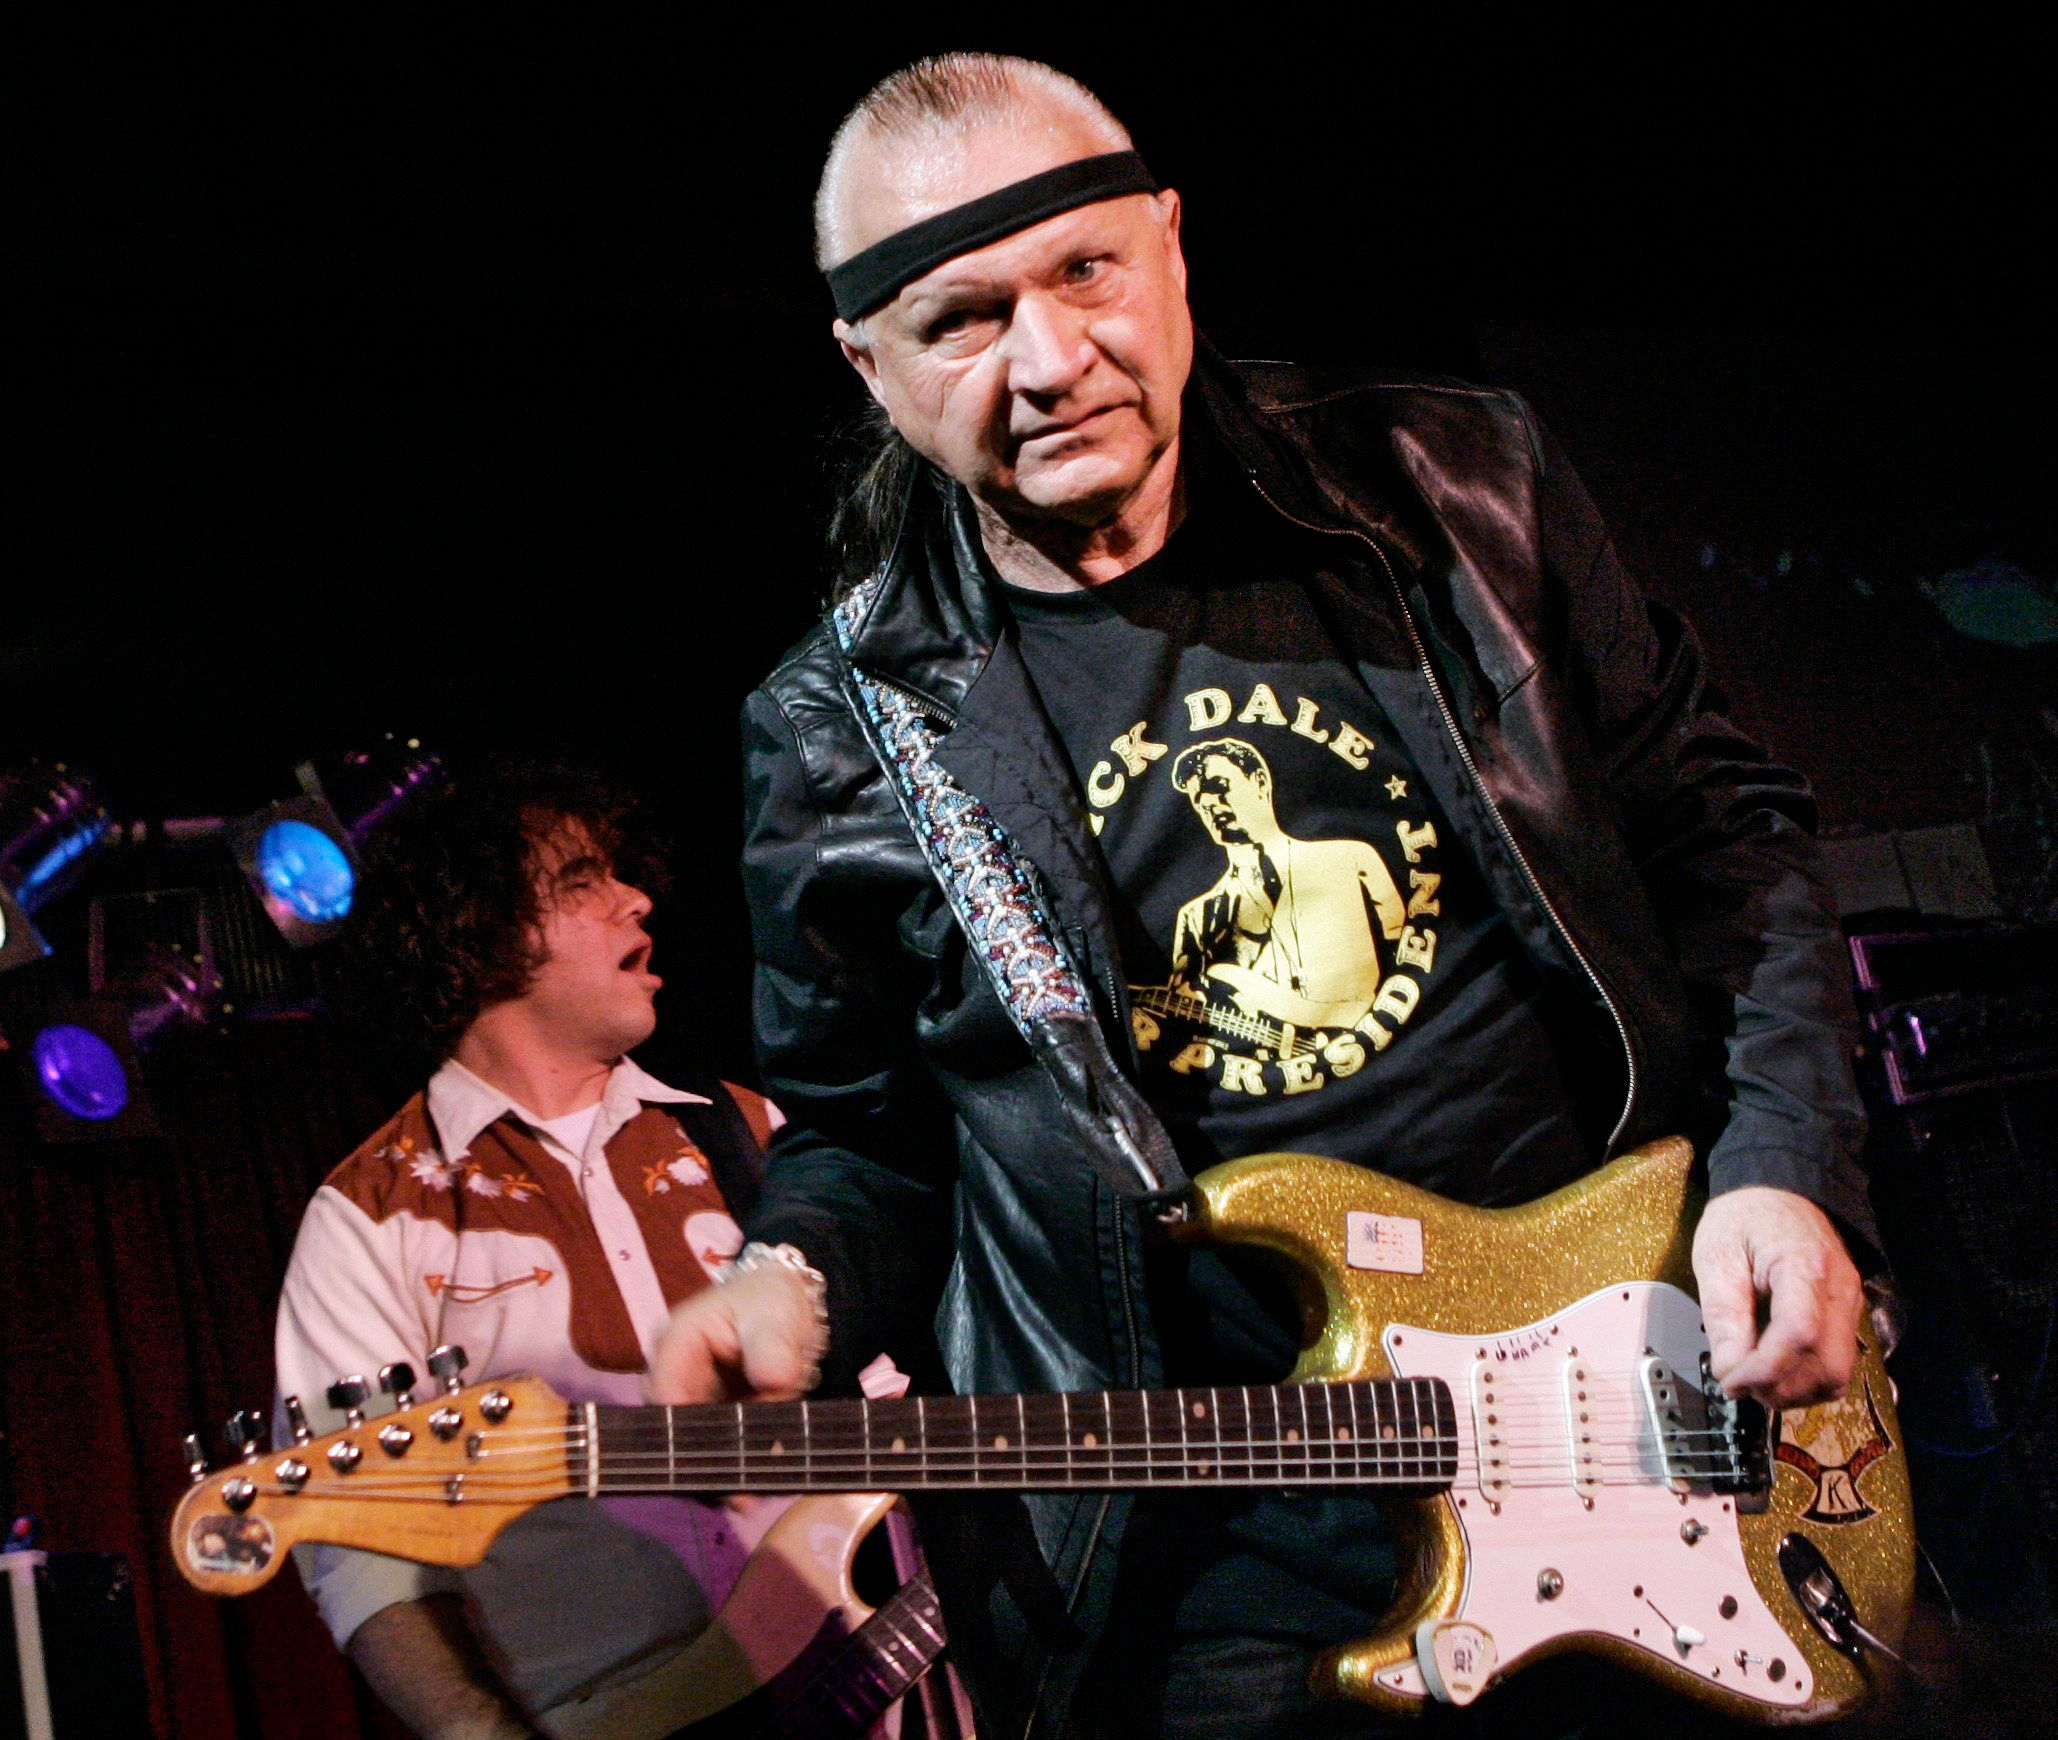 """FILE - In this May 27, 2007 file photo, Dick Dale, known as """"The King of the Surf Guitar,"""" performs at B.B. King Blues Club in New York. Dale has died at age 81. His former bassist Sam Bolle says Dale passed away Saturday night, March 16, 2019. No other details were available. (AP Photo/Richard Drew, File)"""